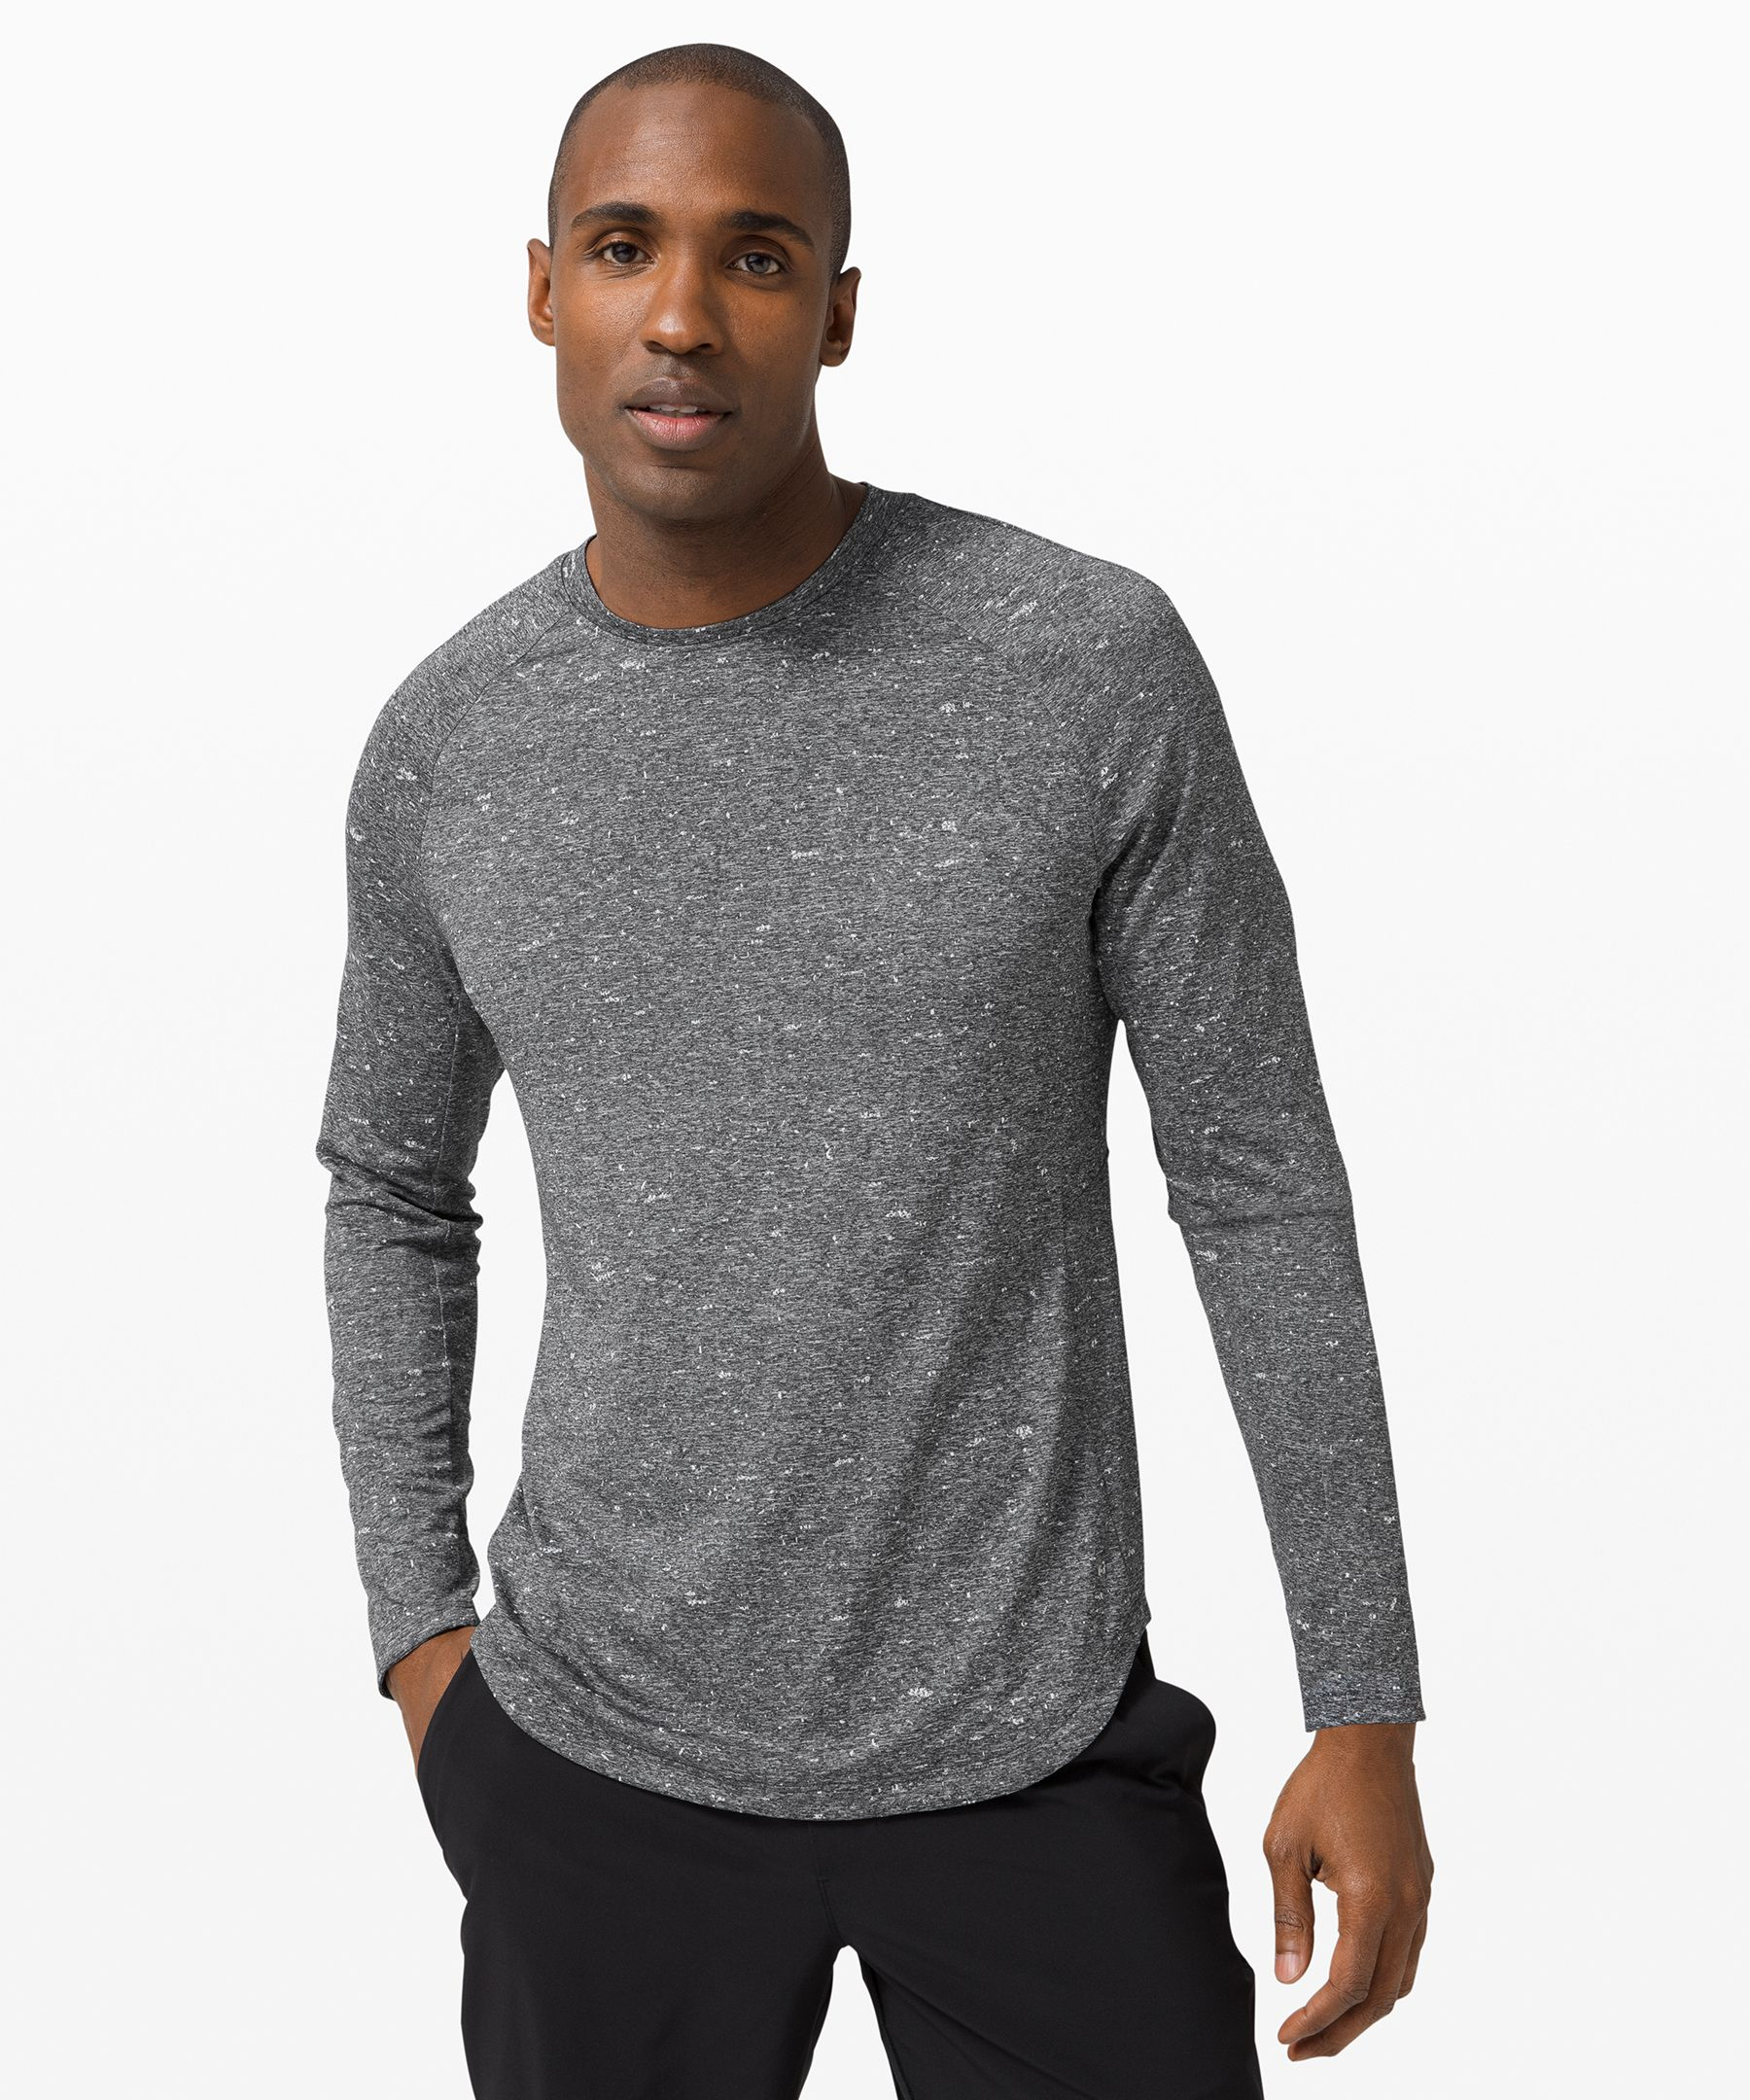 Train hard and get sweaty. This long sleeve keeps things well ventilated as you increase your intensity.